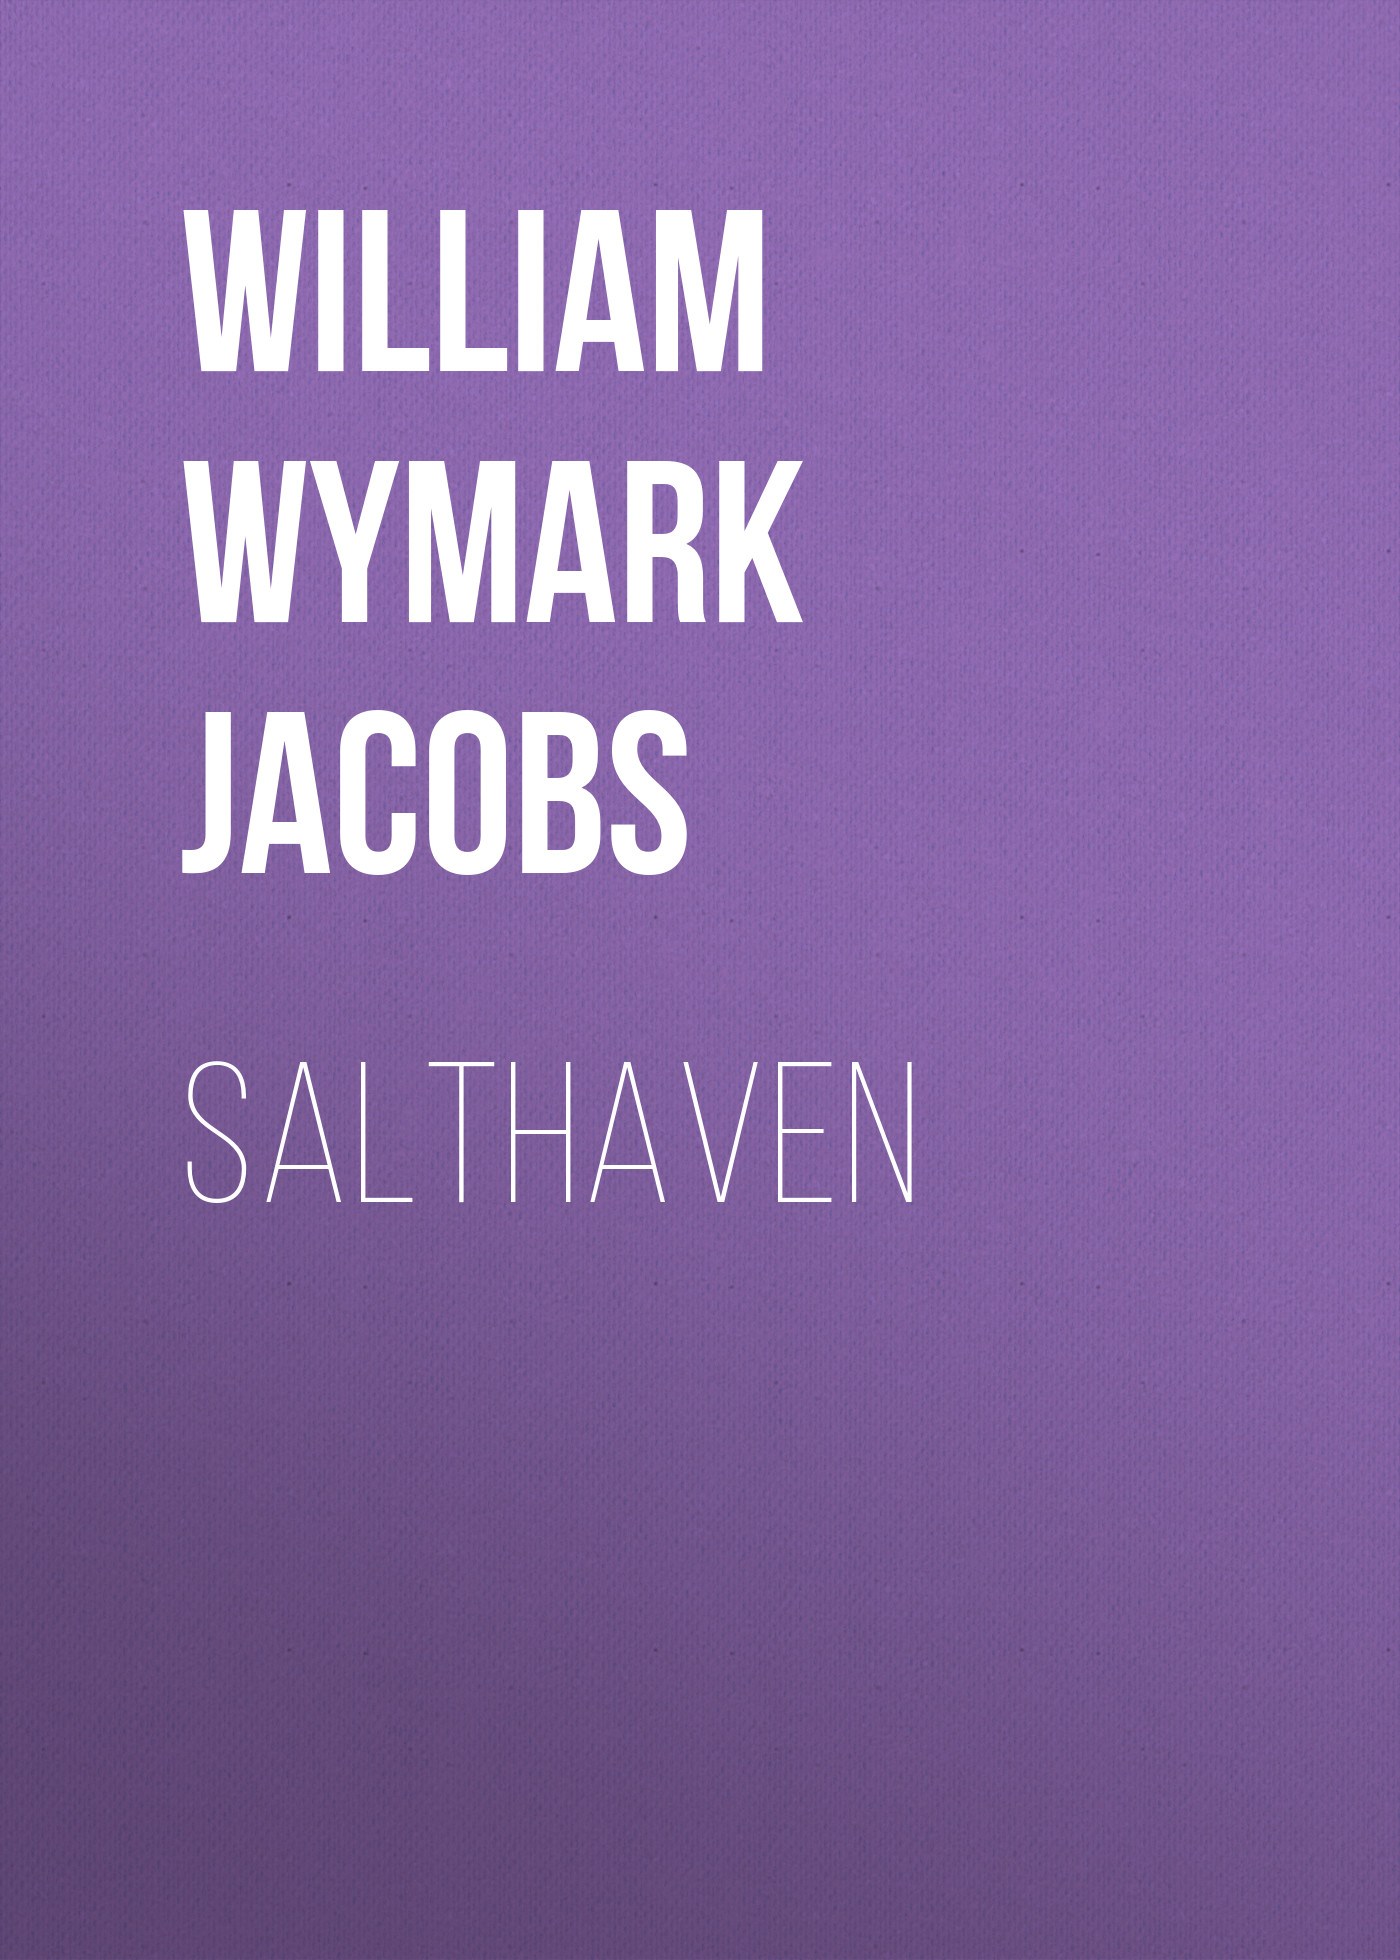 William Wymark Jacobs Salthaven